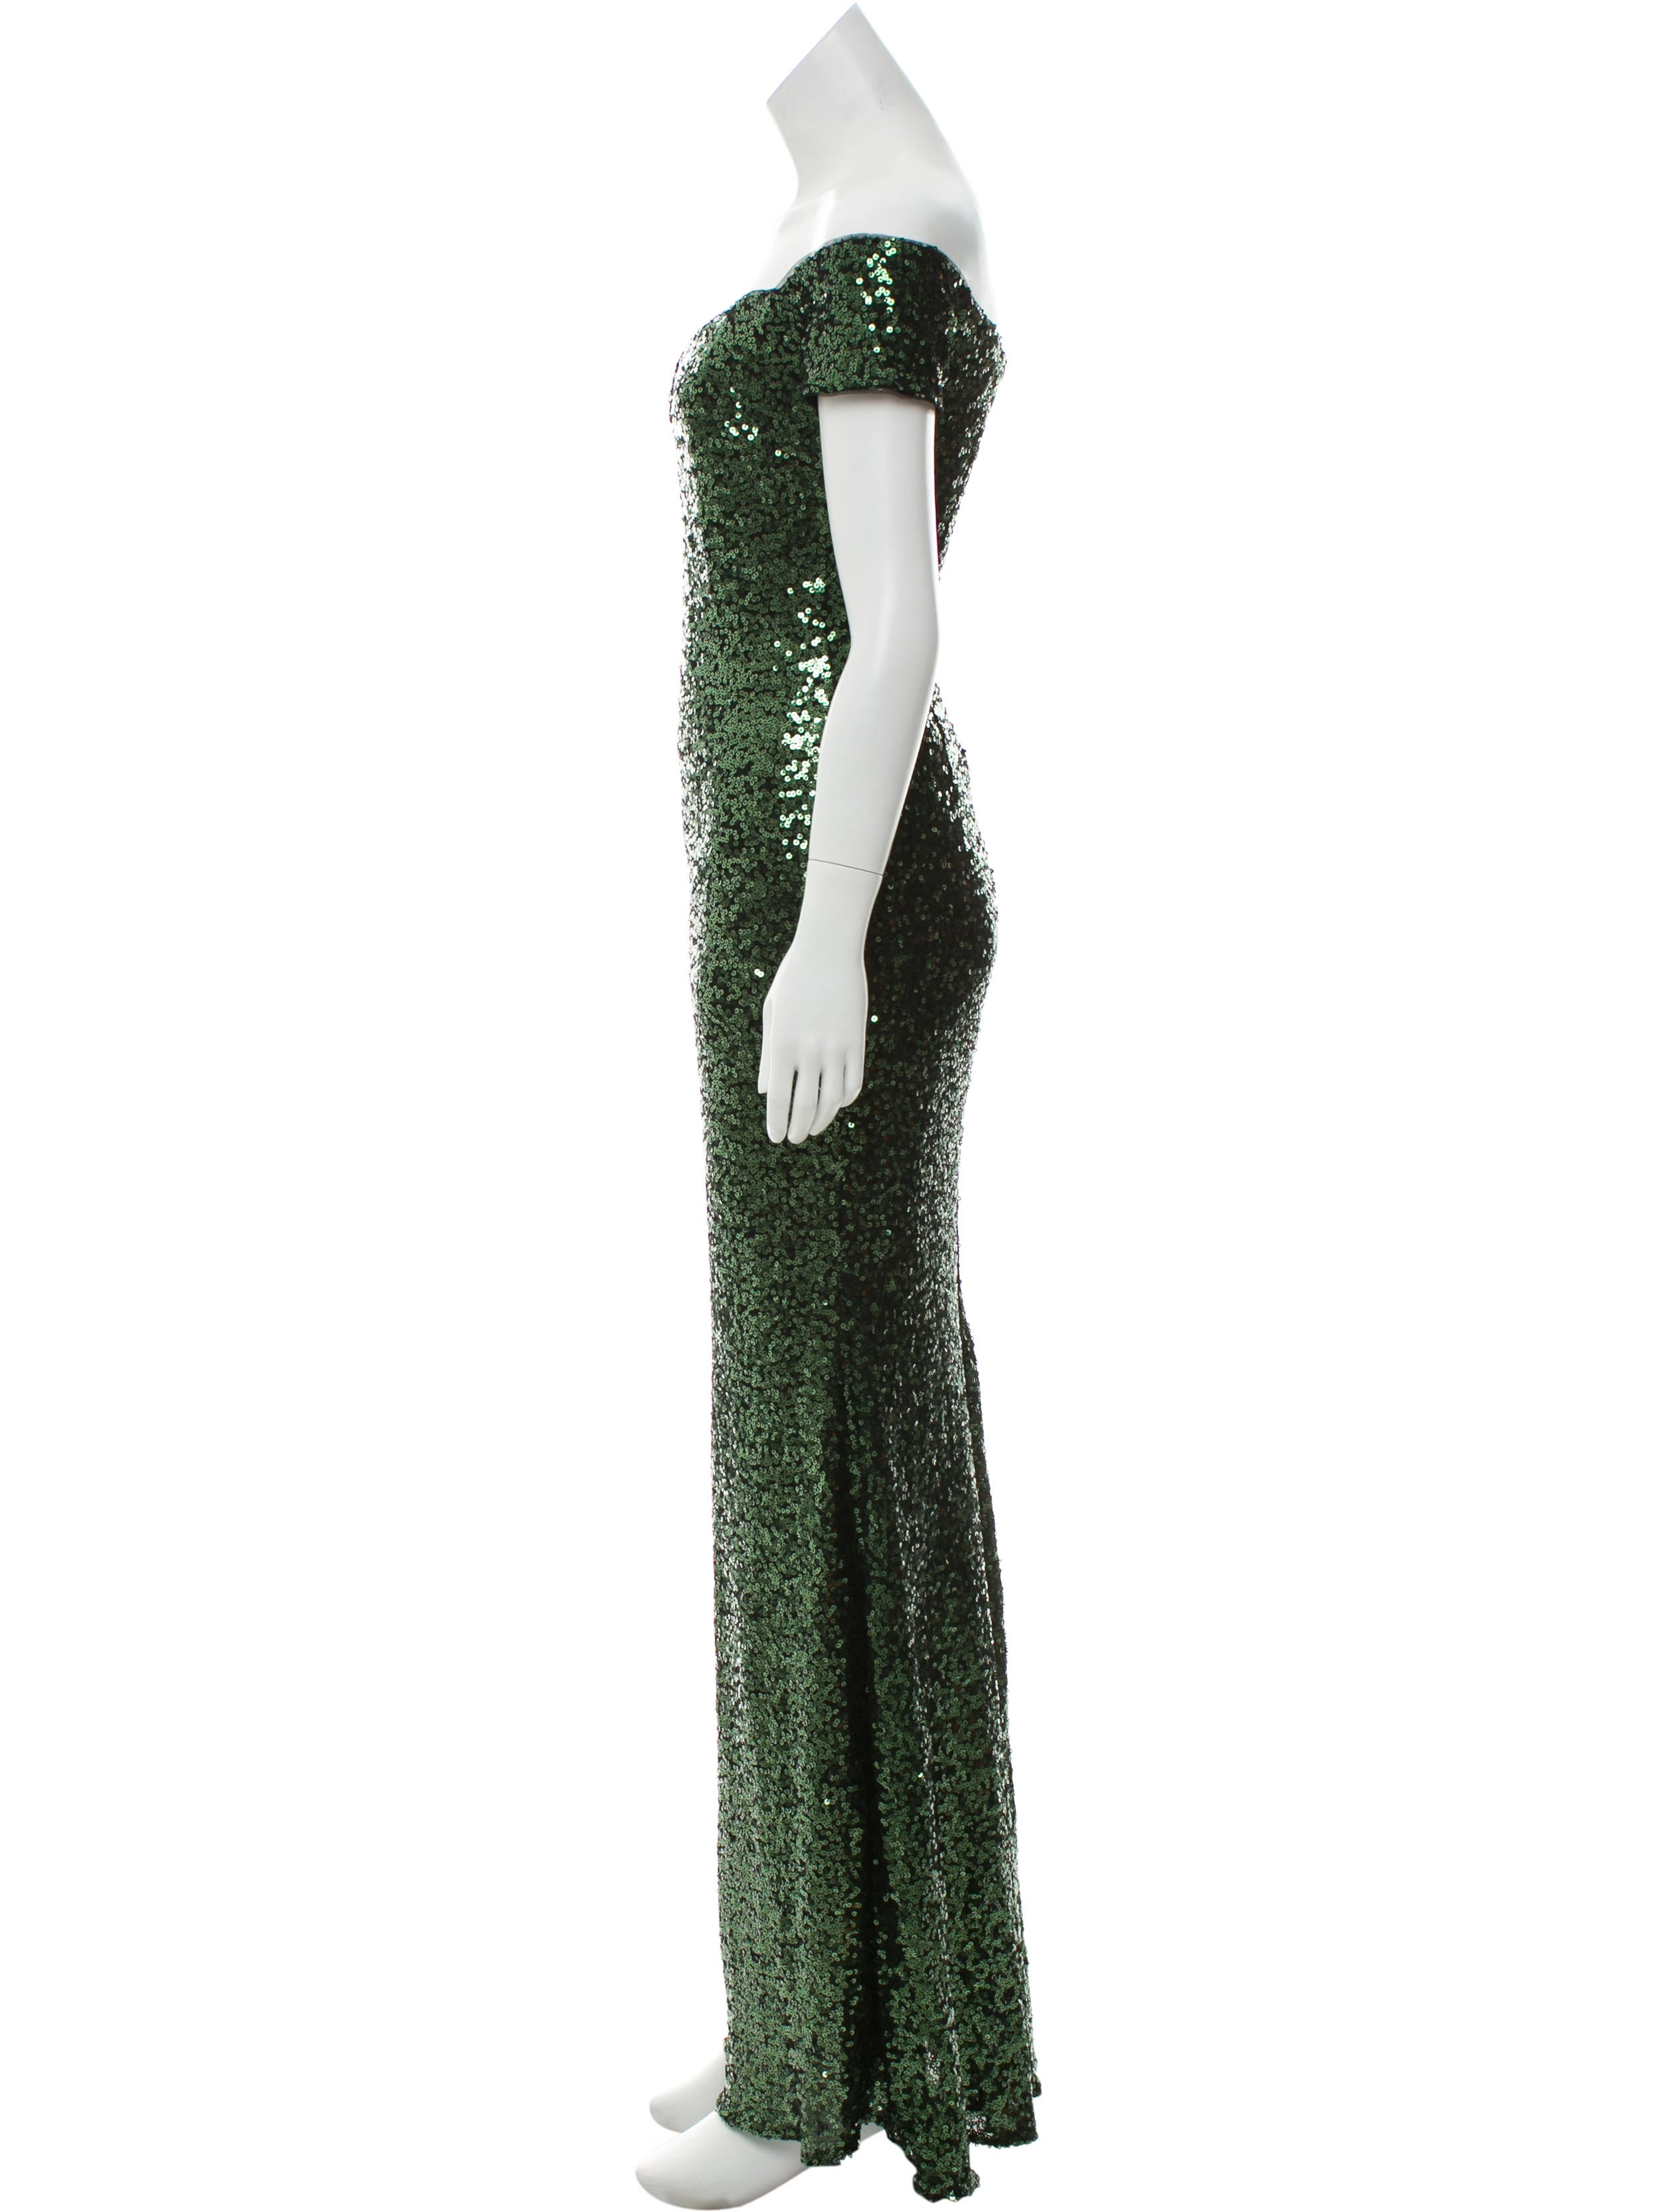 Badgley Mischka Sequin Sheath Gown - Clothing - BAG22835 | The RealReal